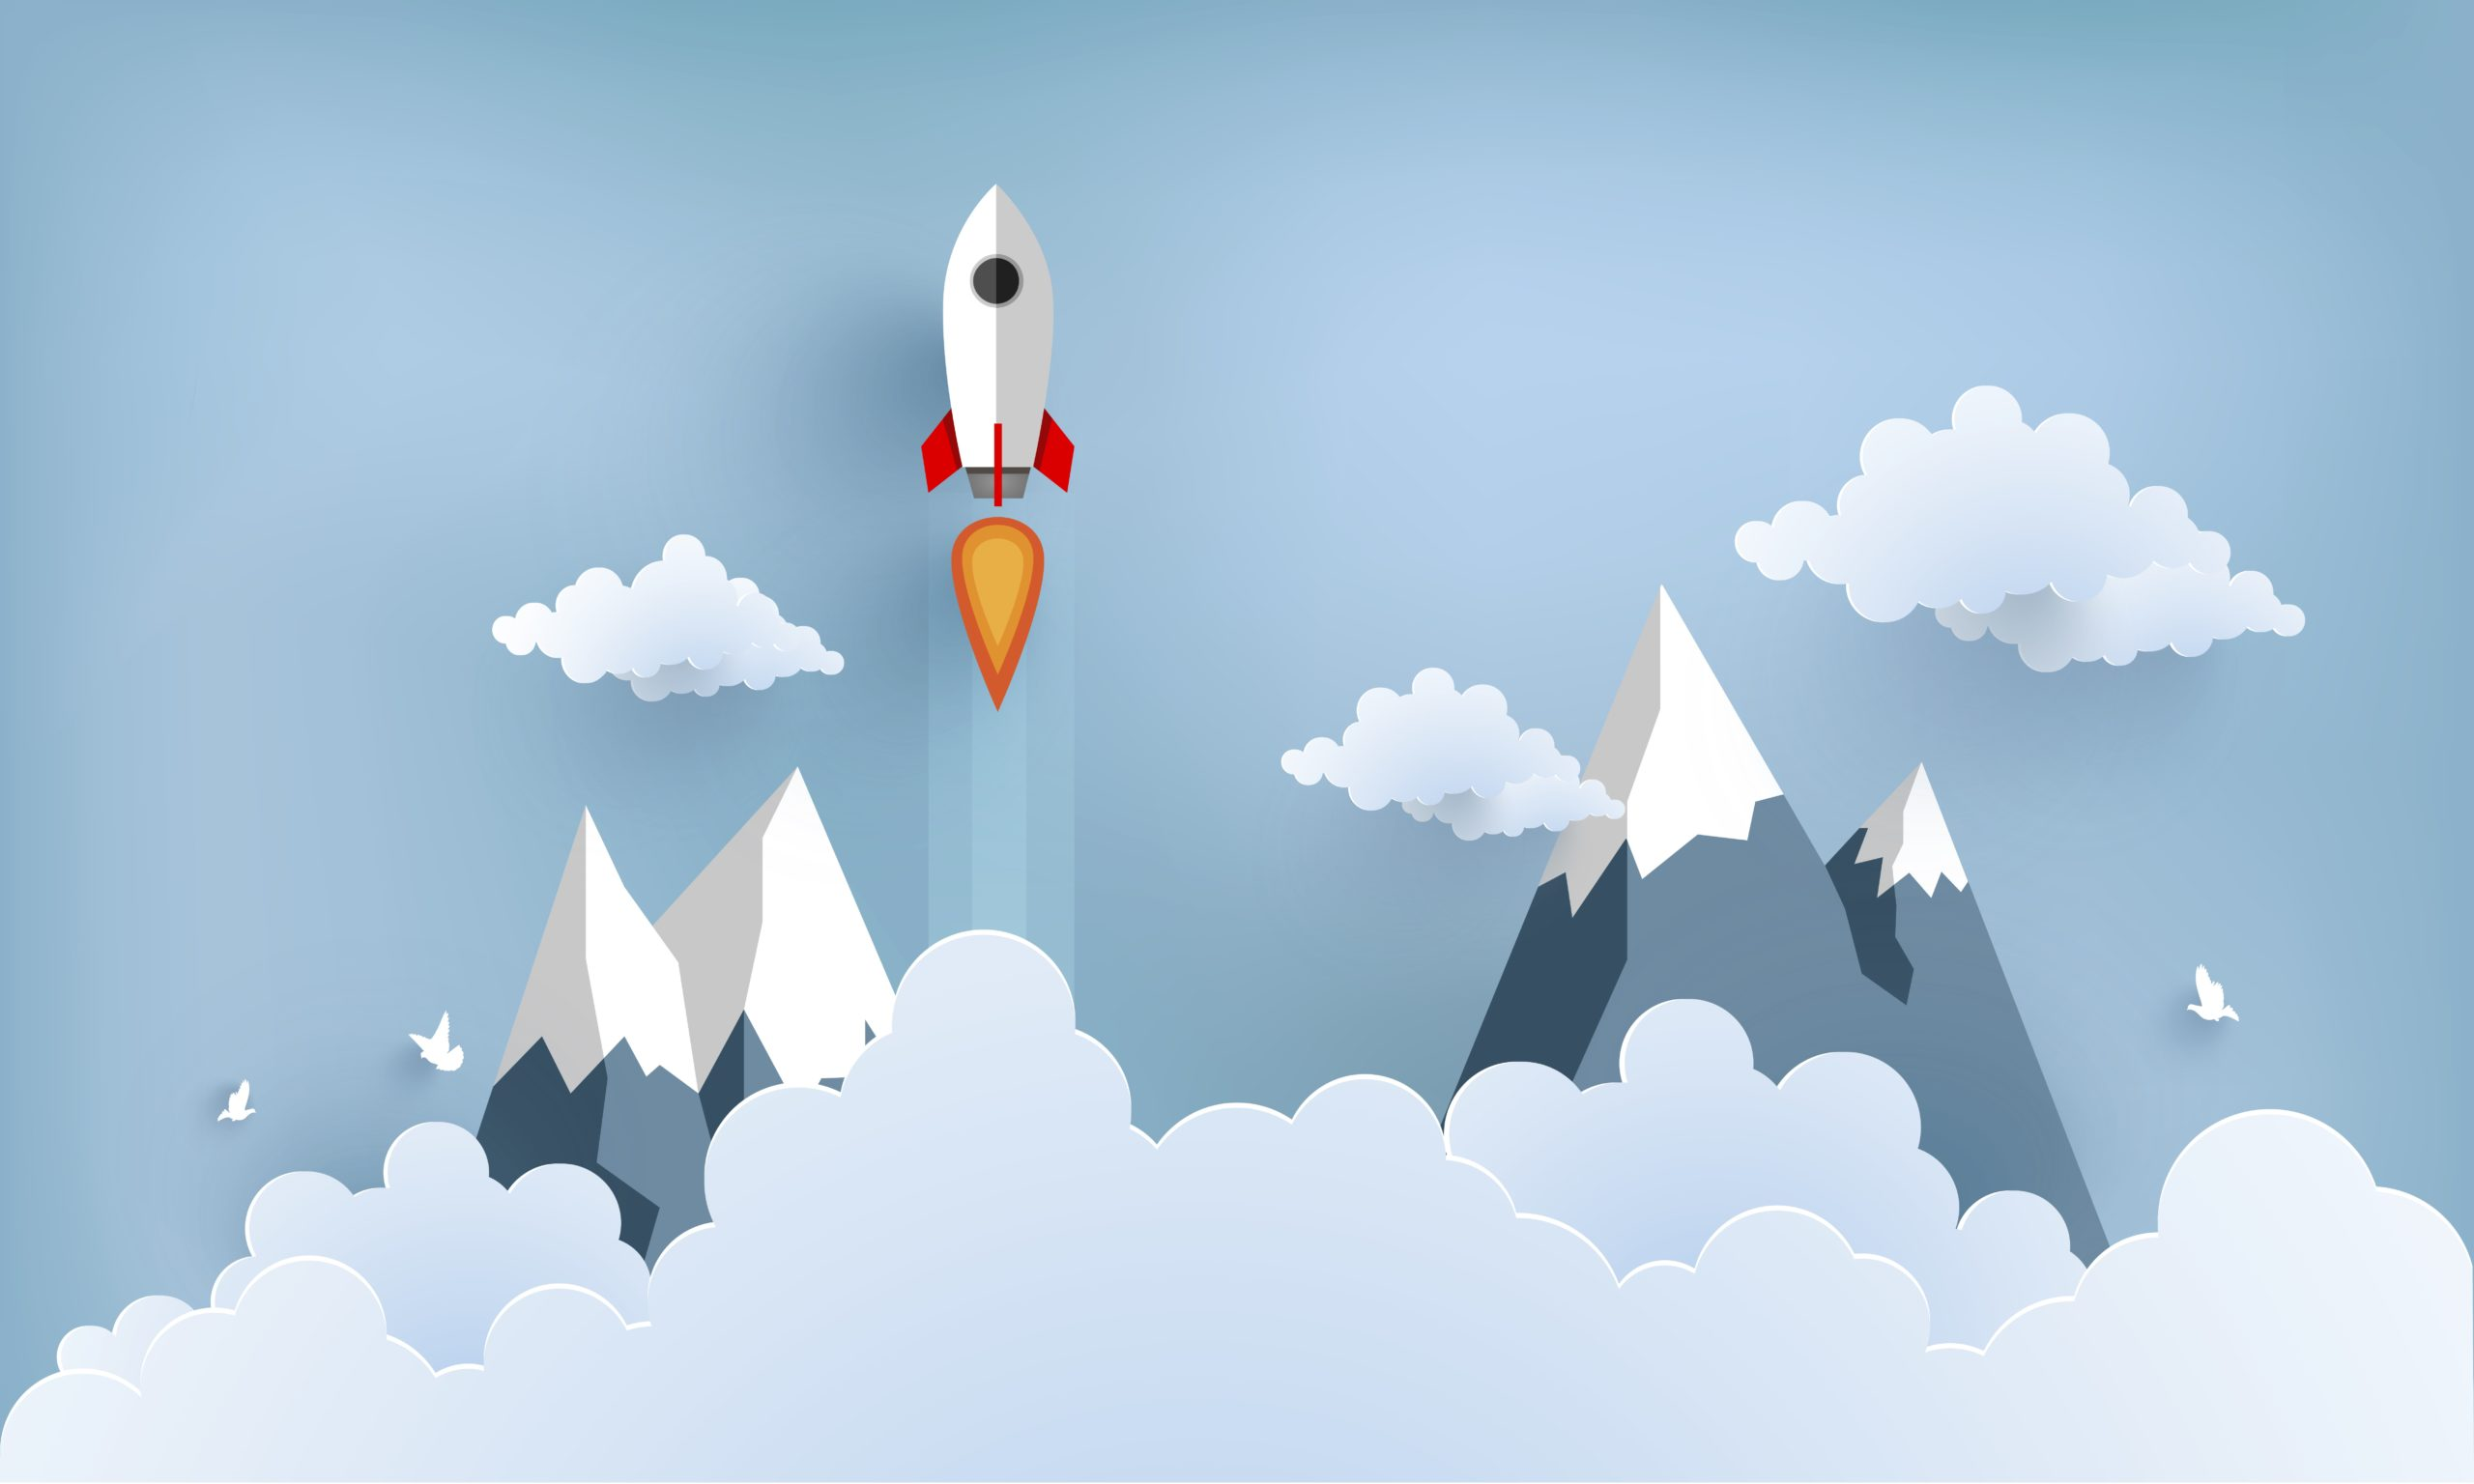 A rocket emerging above the clouds, mountain tops are seen, symbolizing a launch investing in startups